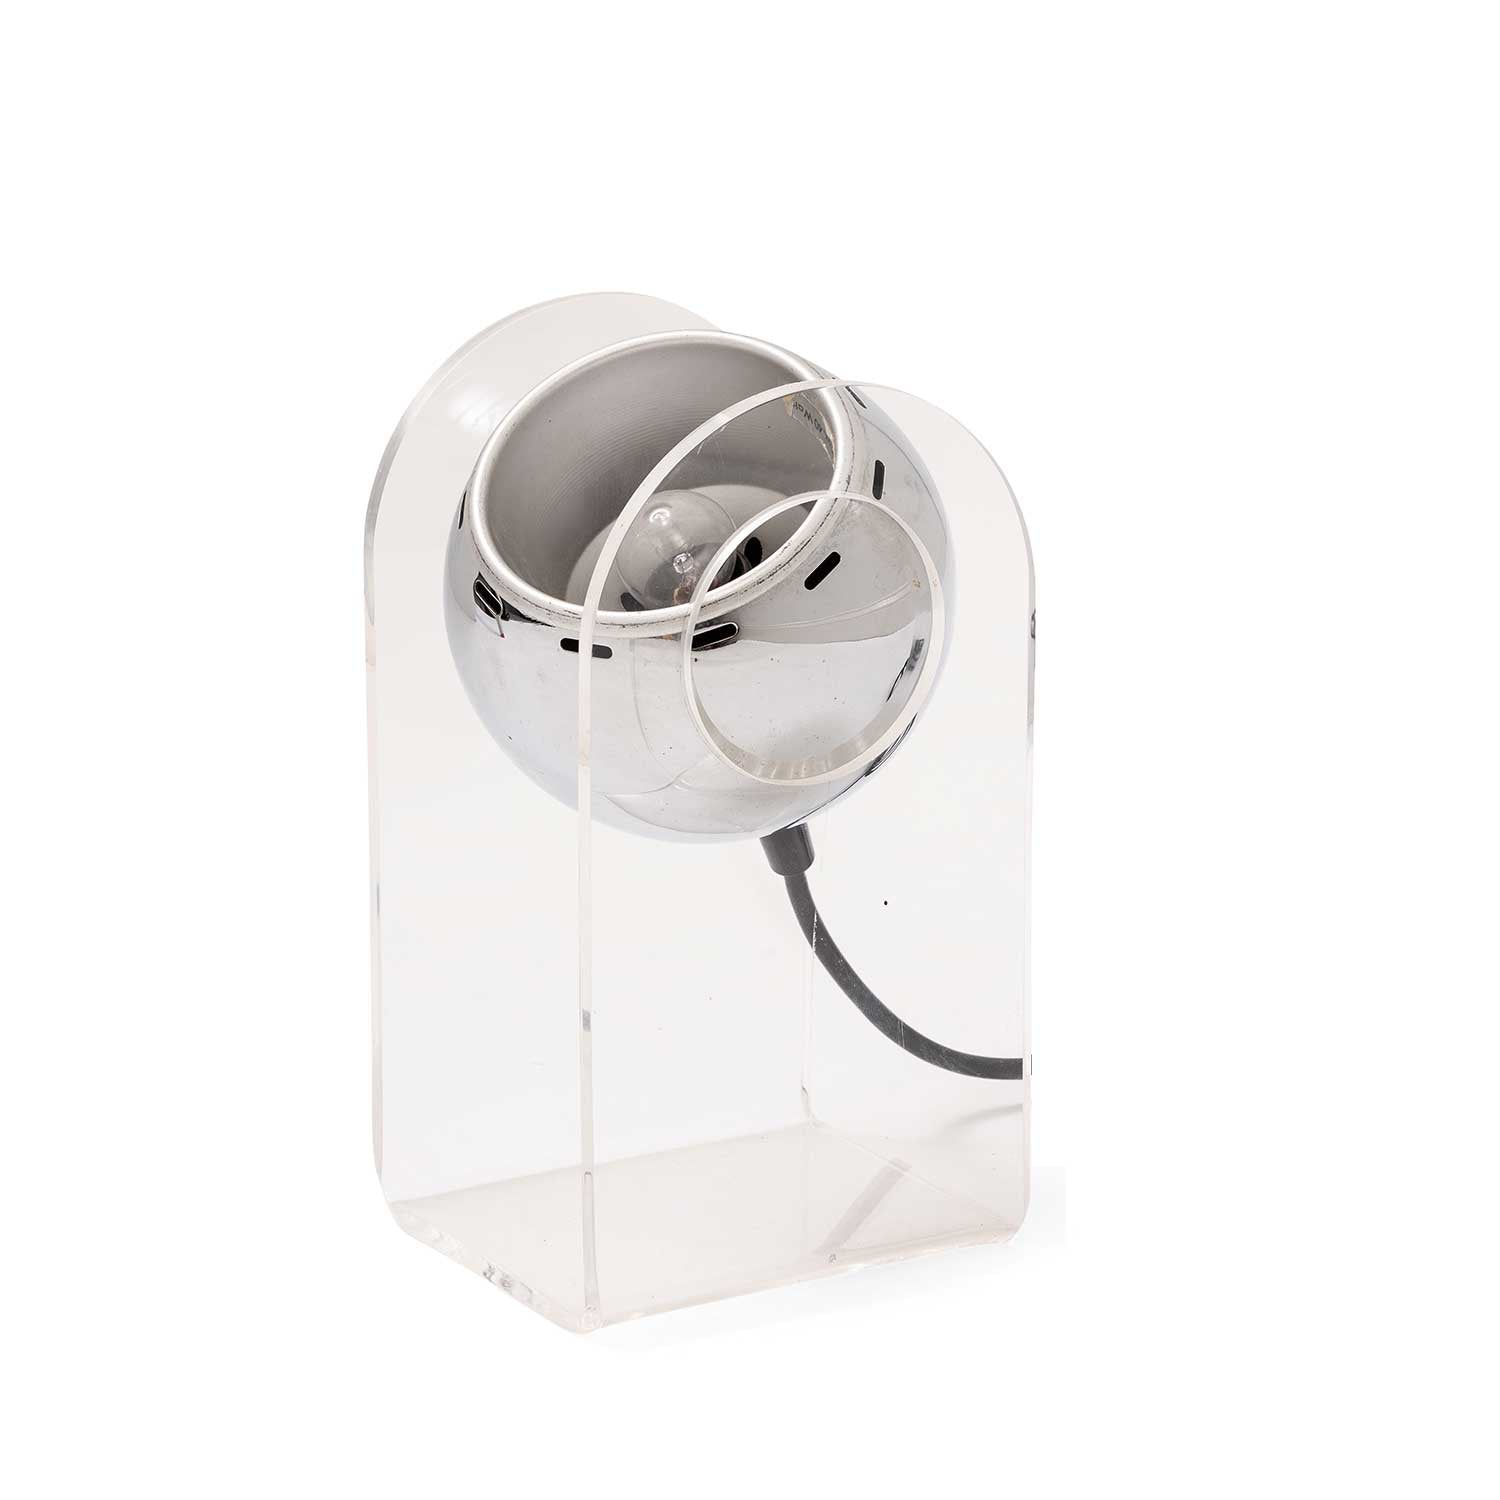 Lucite Chrome Eyeball Swivel Table Lamp